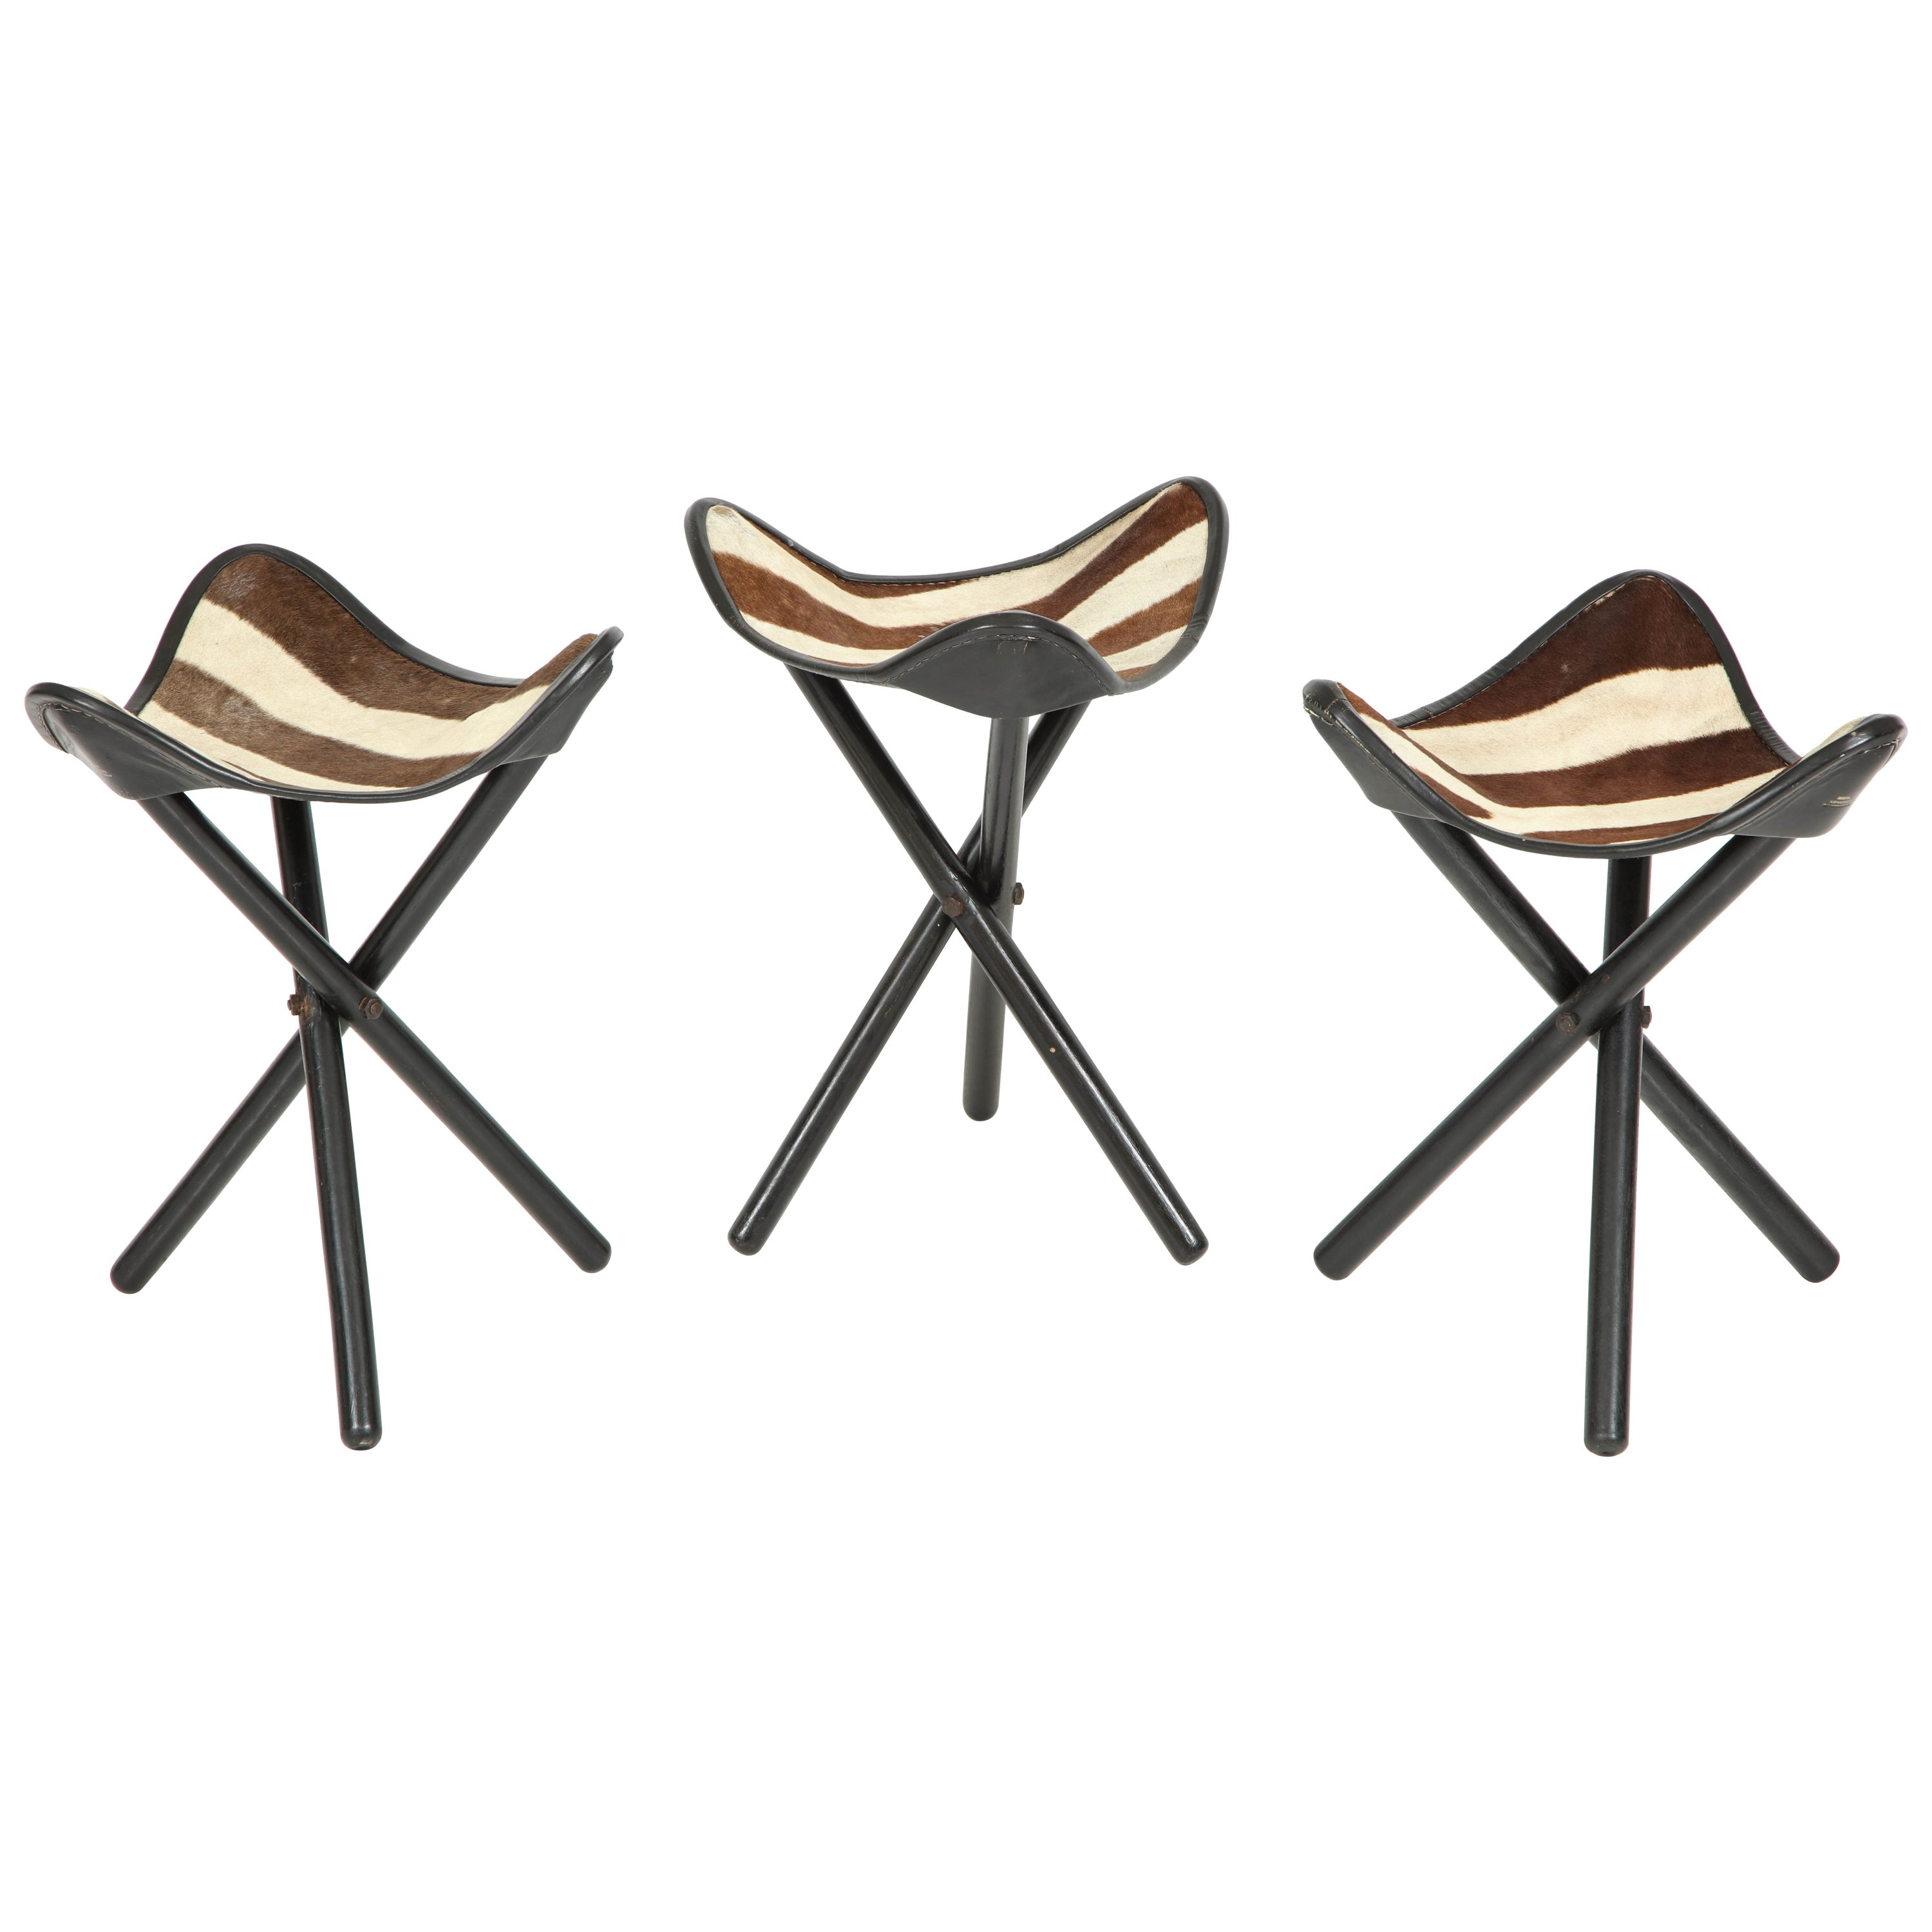 Zimmerman of nairobi zebra campaign stools for sale at 1stdibs